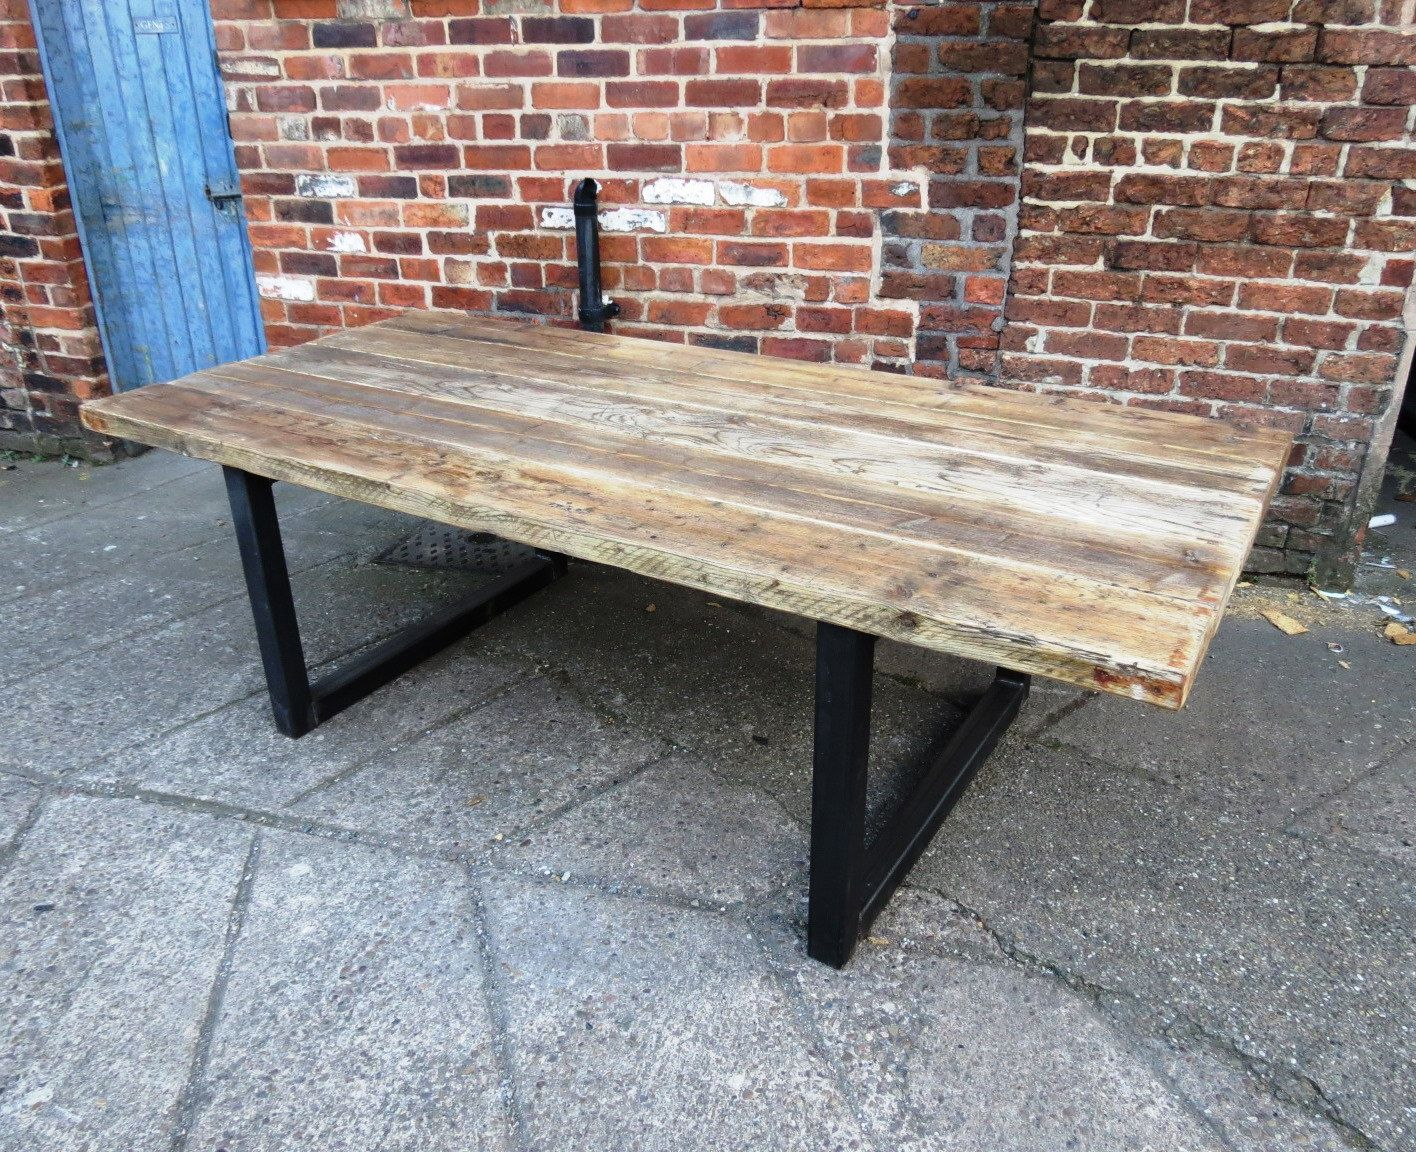 Here is our seater dining table made from reclaimed timber and